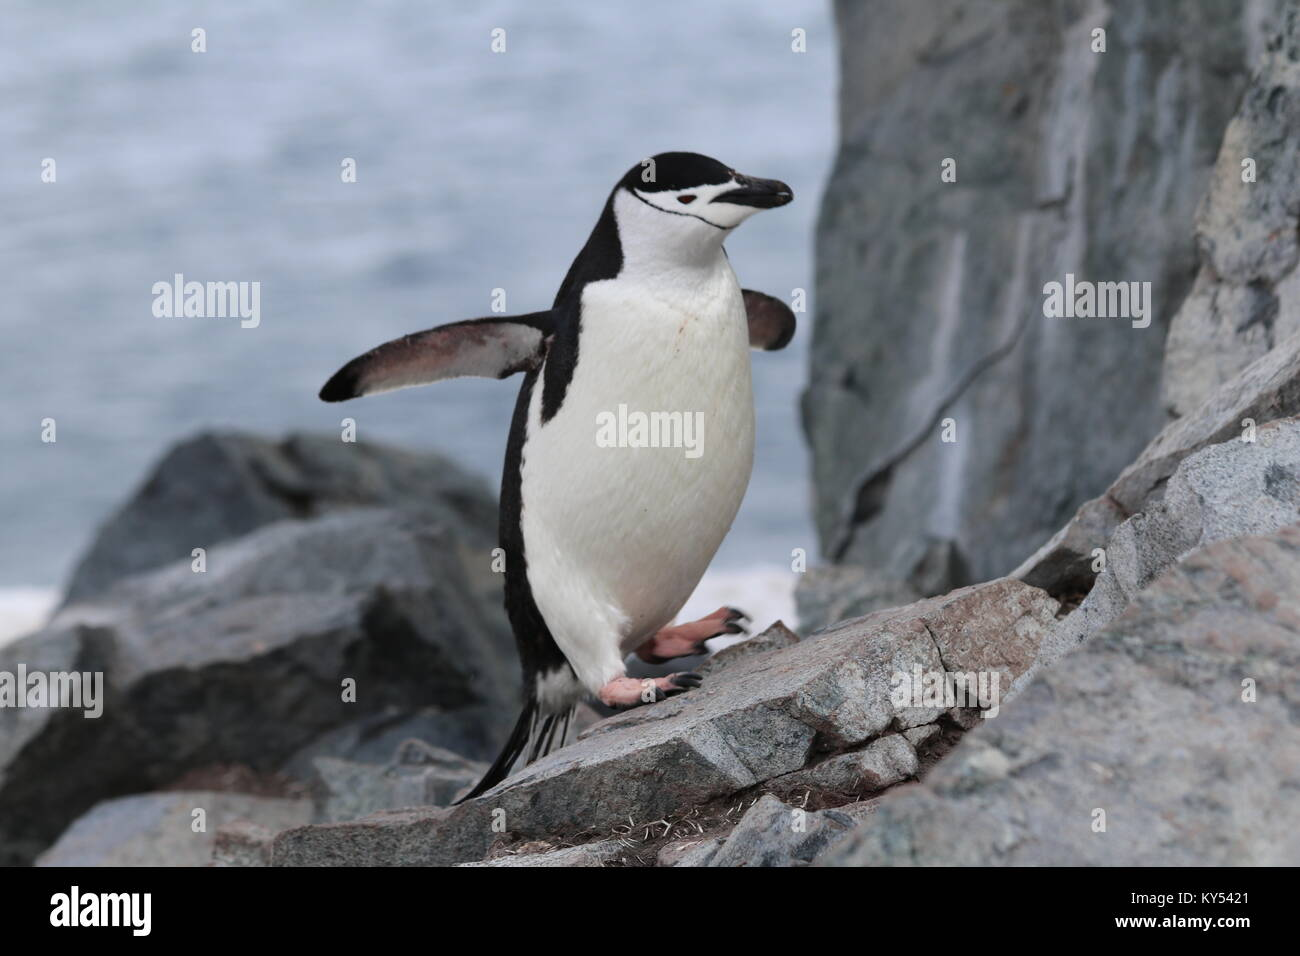 Hopping Chinstrap Penguin in Antarctica - Stock Image